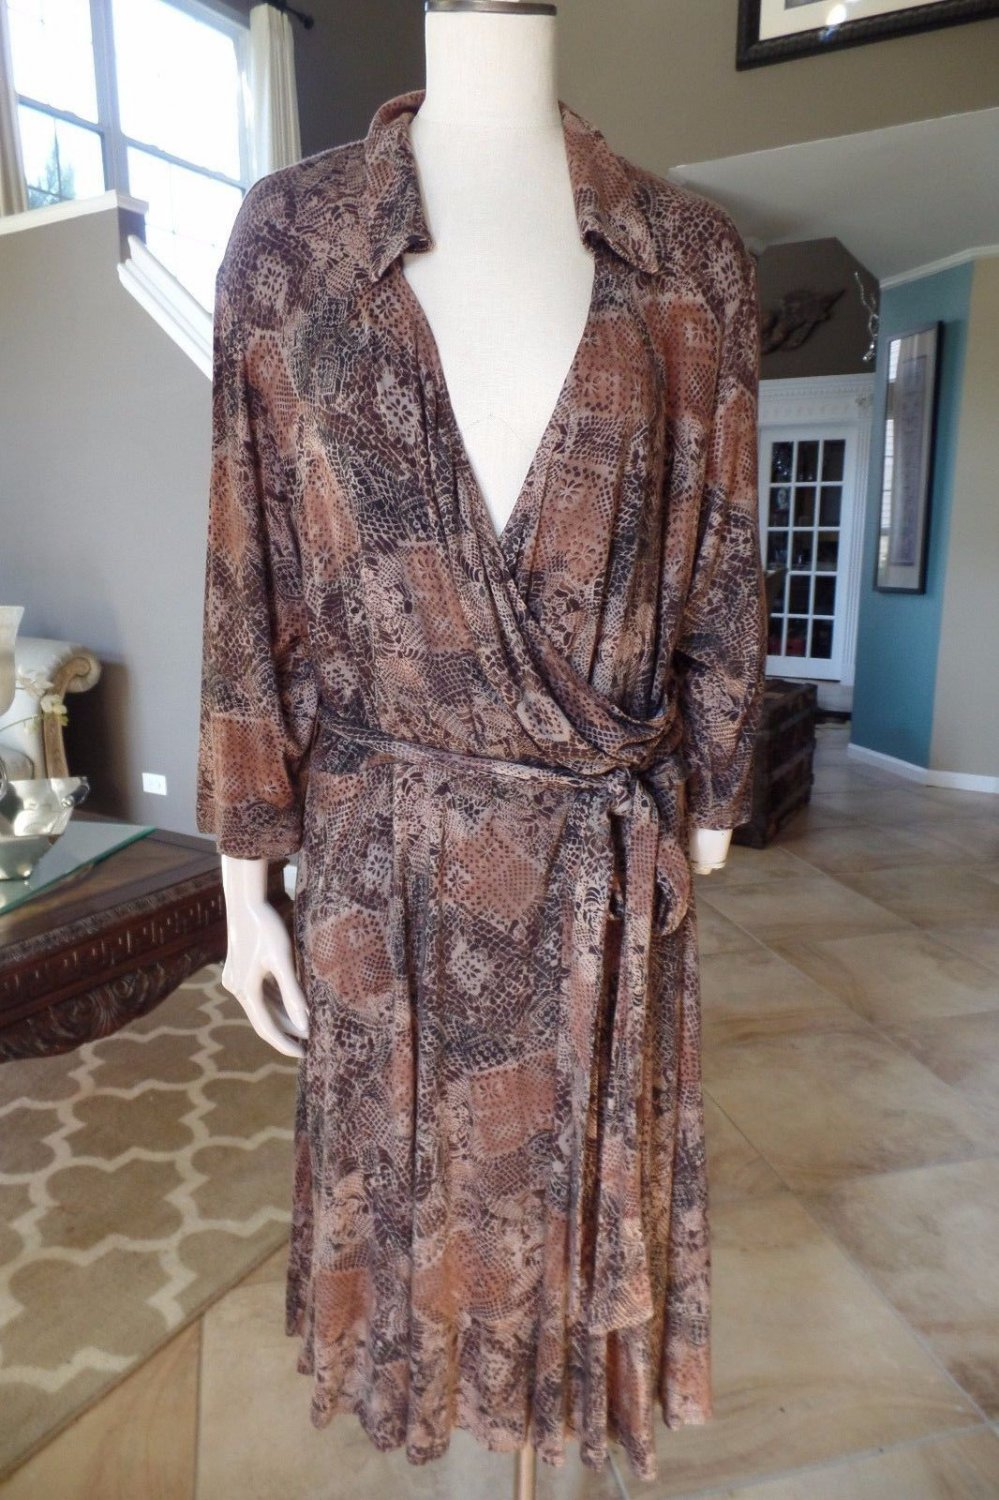 STUDIO 1940 Animal Snake Print Faux Wrap Stretch Sheath Dress 24W